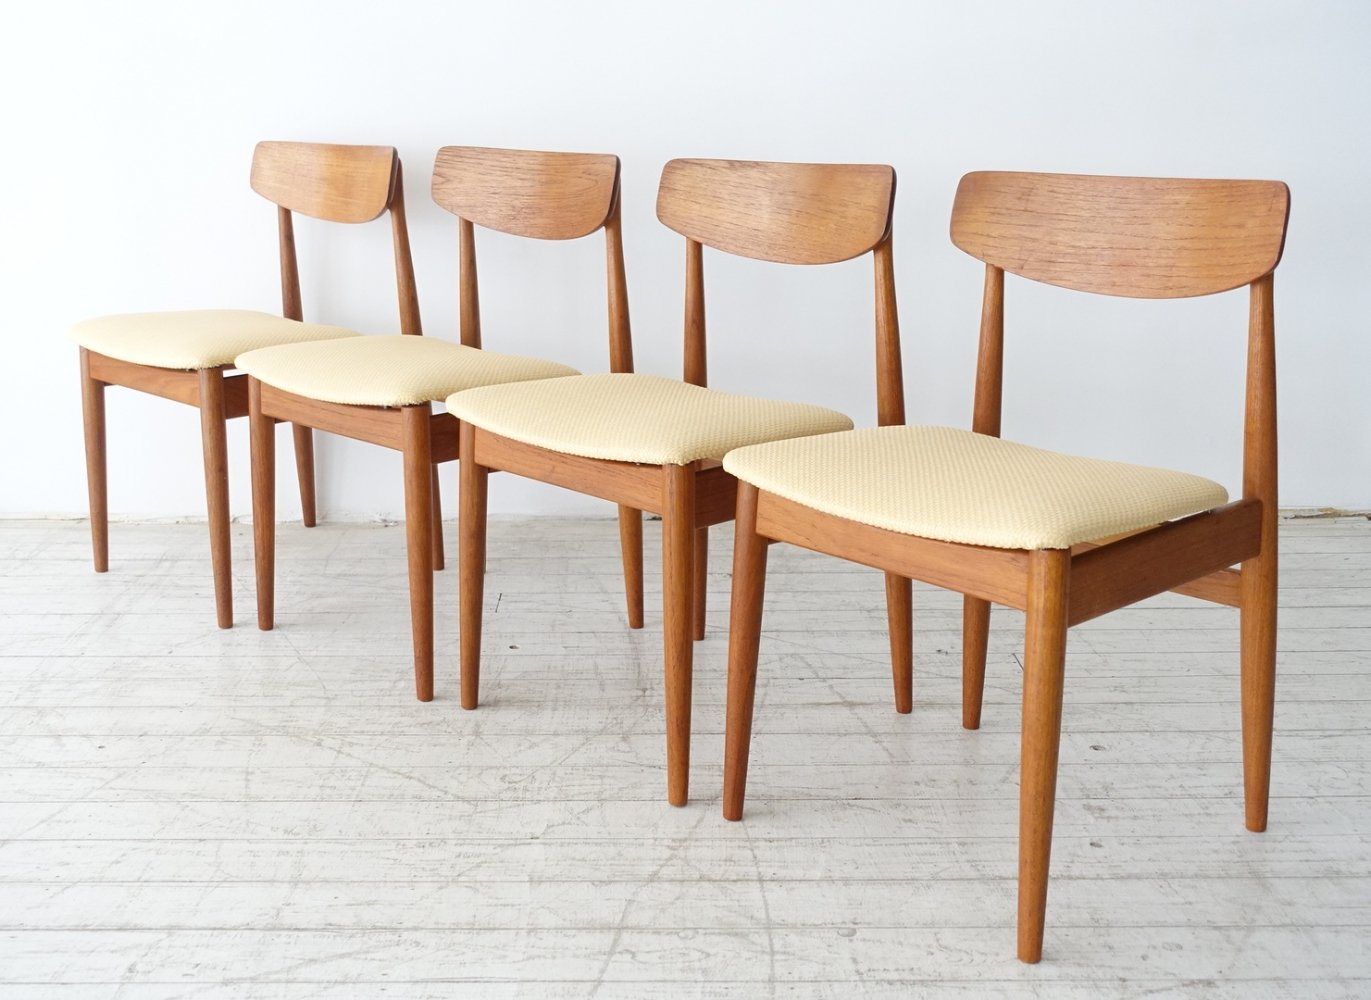 Set of 4 Solid teak chairs by Casala, Germany 1970s